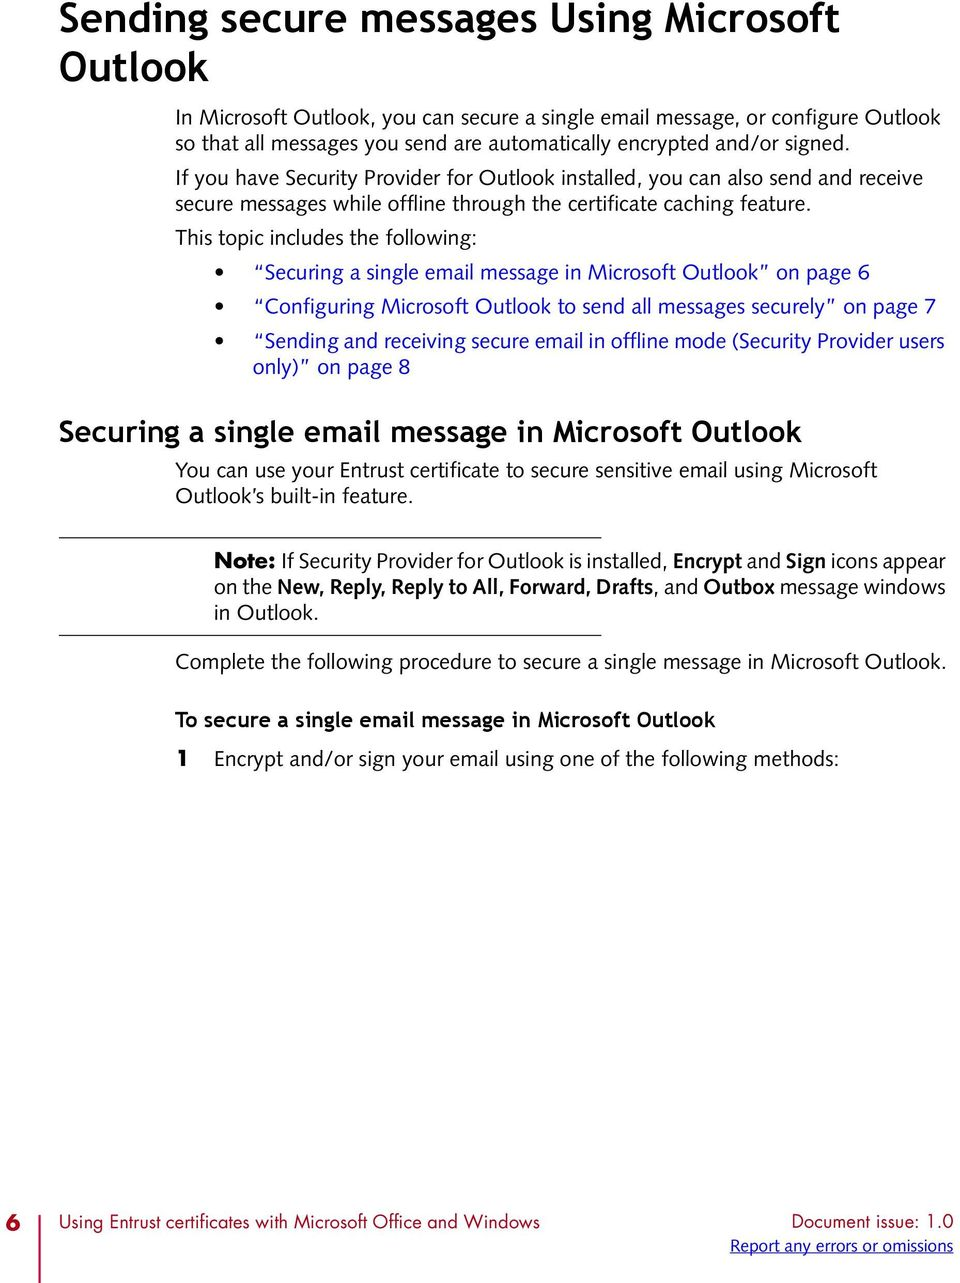 This topic includes the following: Securing a single email message in Microsoft Outlook on page 6 Configuring Microsoft Outlook to send all messages securely on page 7 Sending and receiving secure